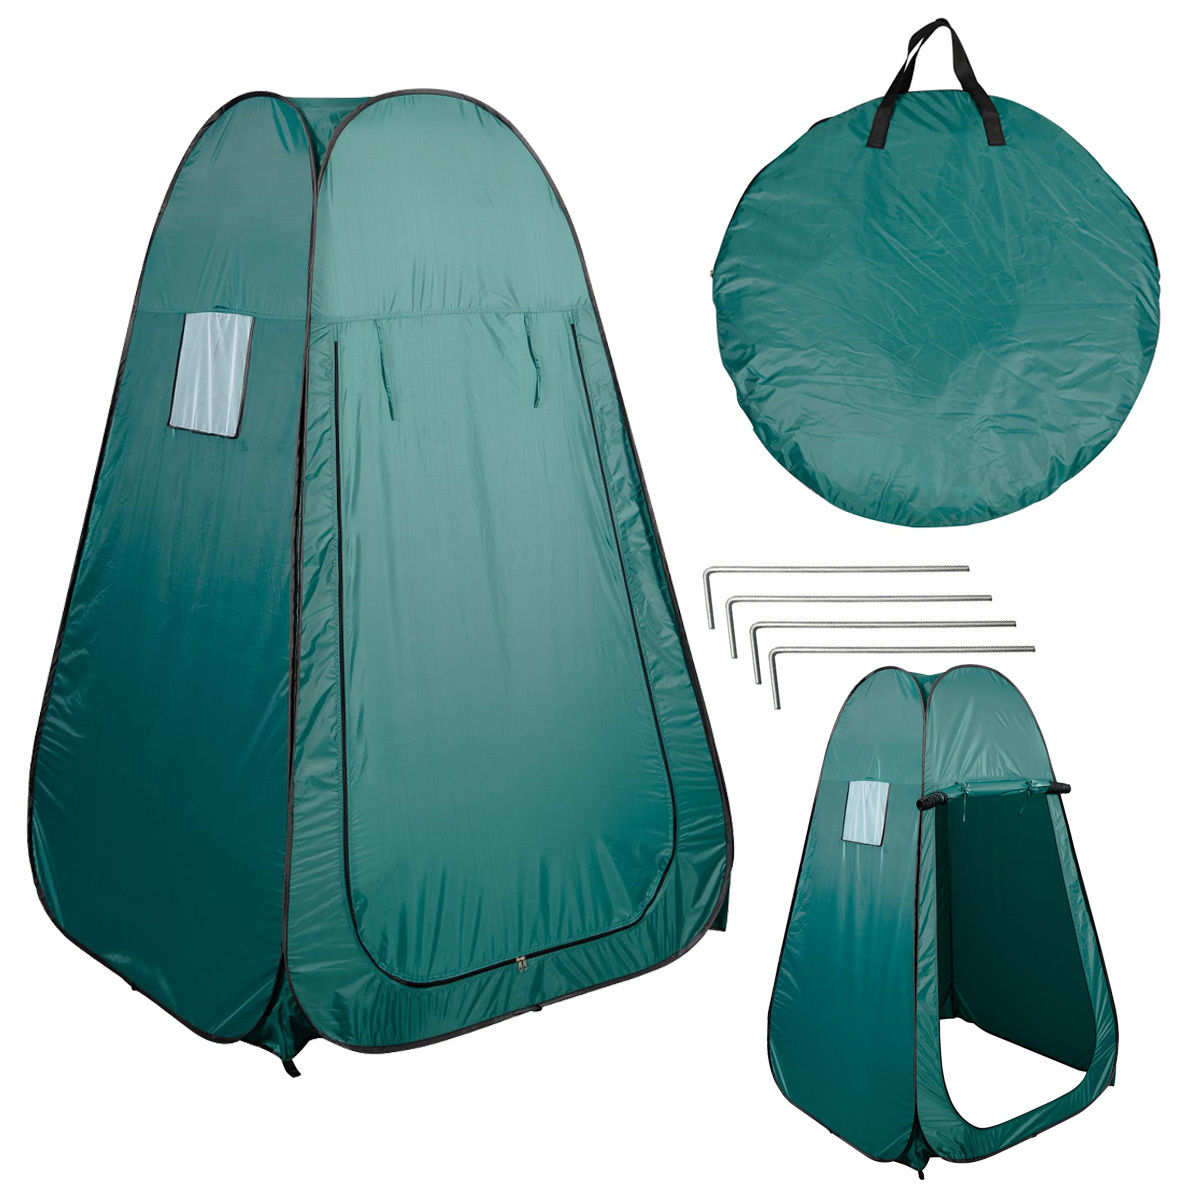 Costway Portable Pop UP Fishing u0026 Bathing Toilet Changing Tent C&ing Room Green  sc 1 st  Walmart & Pop-up Tents